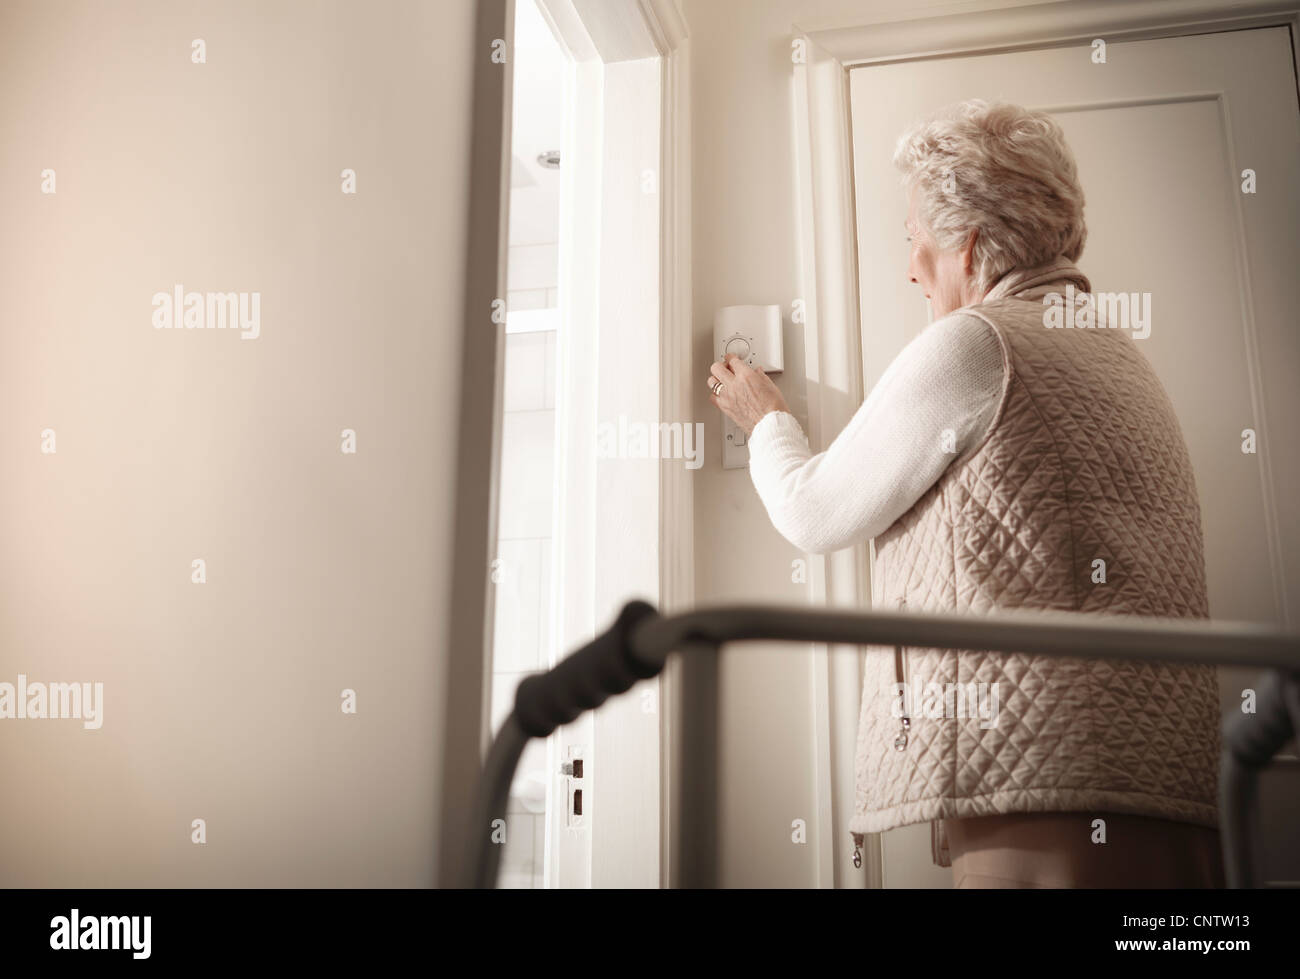 Older woman adjusting heating in house Stock Photo